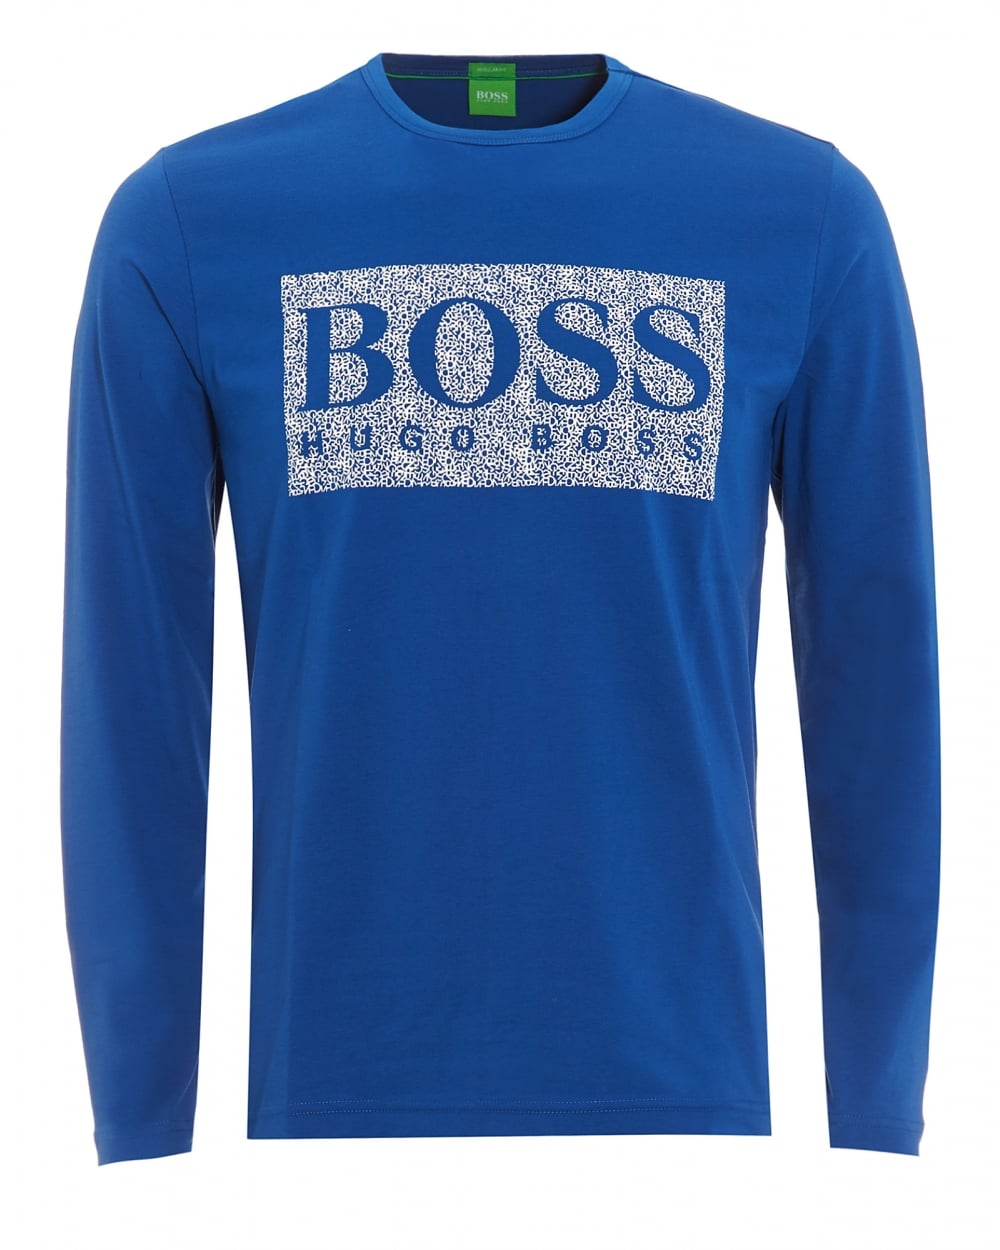 4c89b1497 Hugo Boss Green Mens Togn 1 T-Shirt, Monaco Blue Long Sleeve Logo Tee